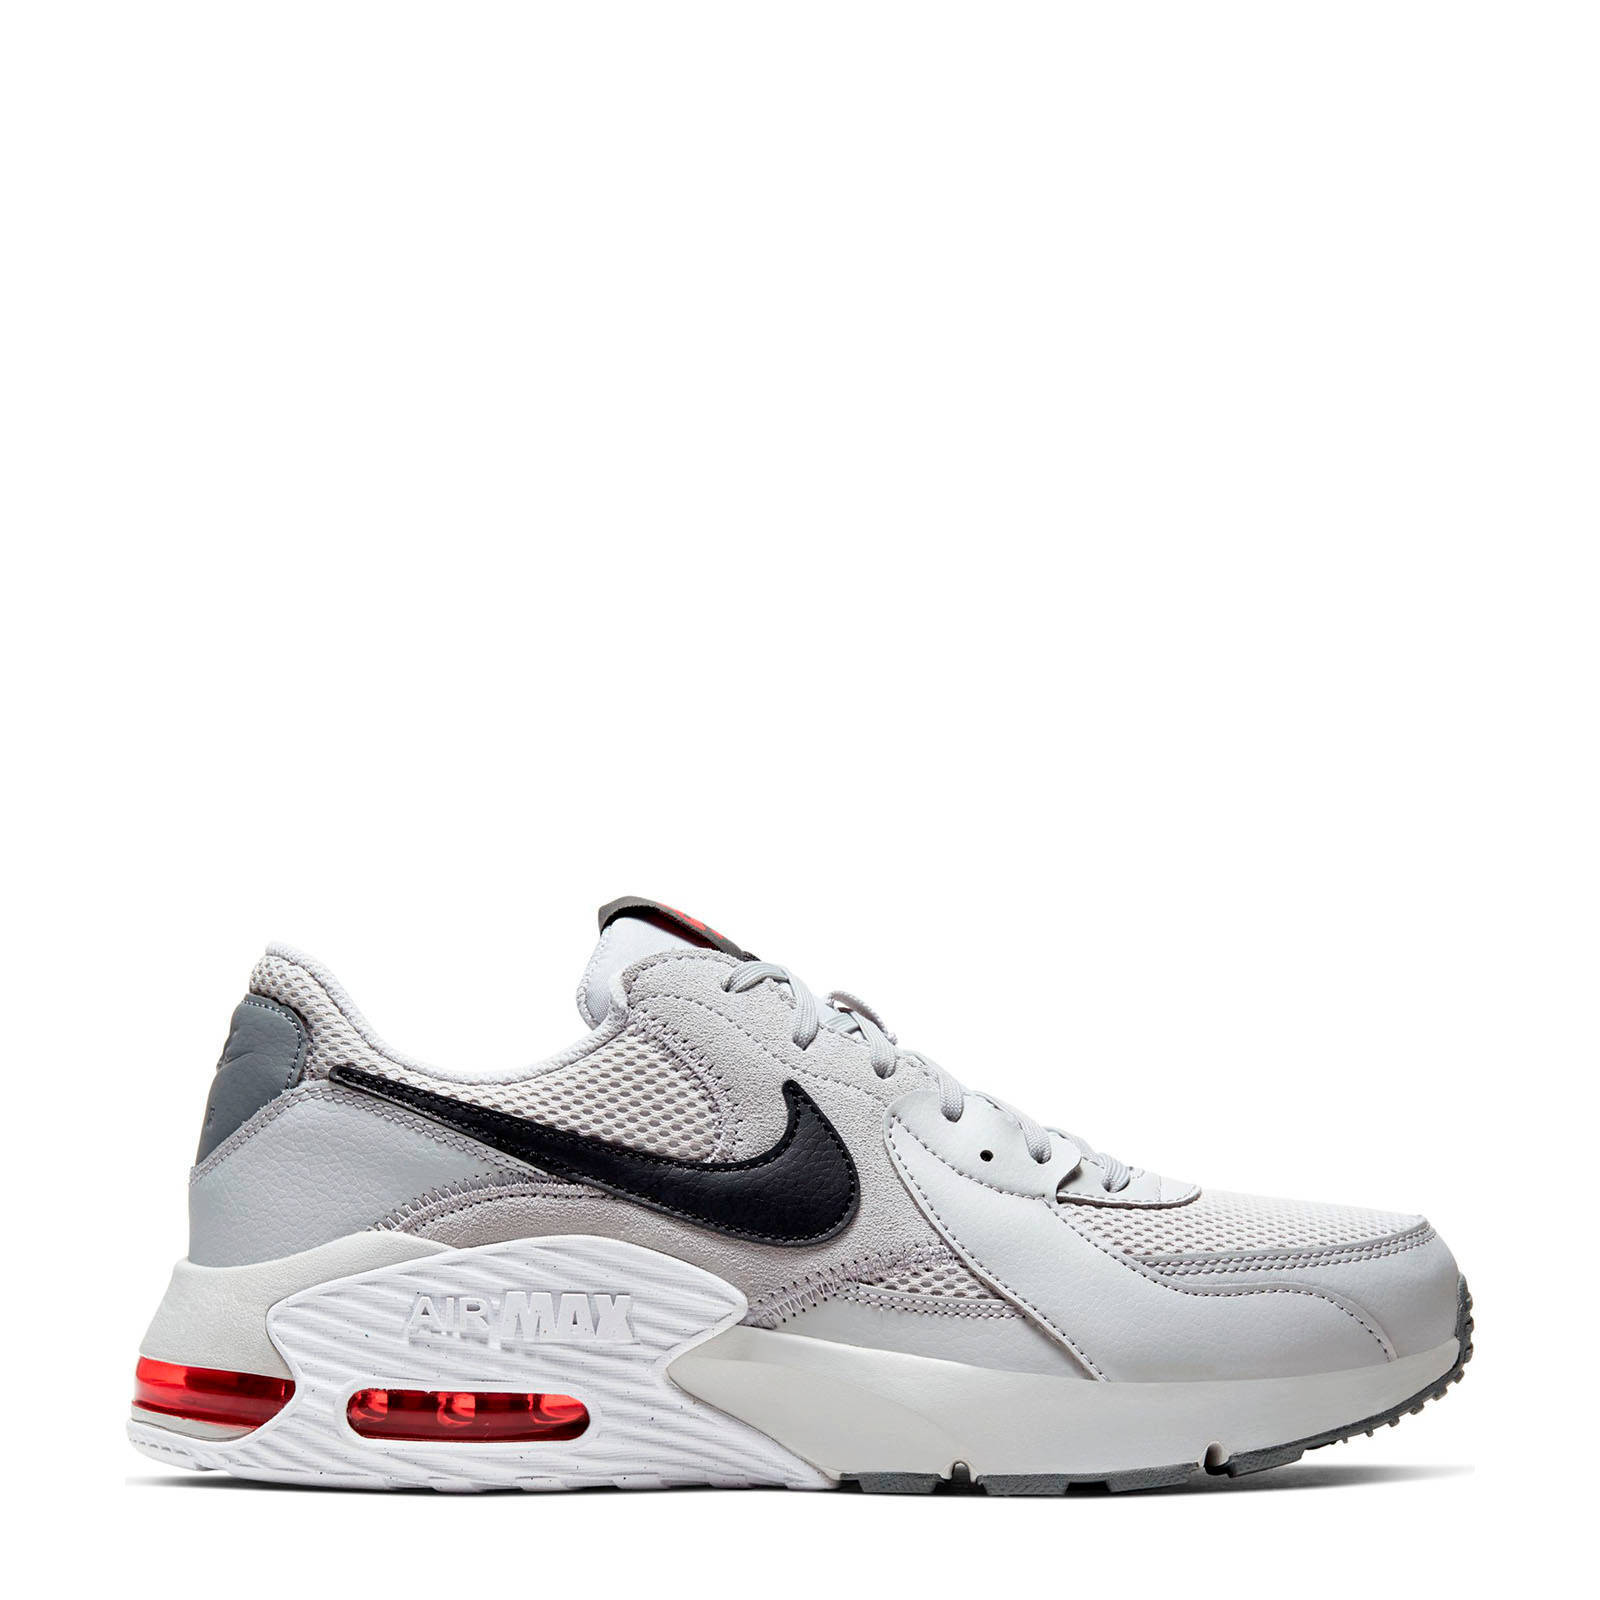 nike air max sequent 4 utility zalando